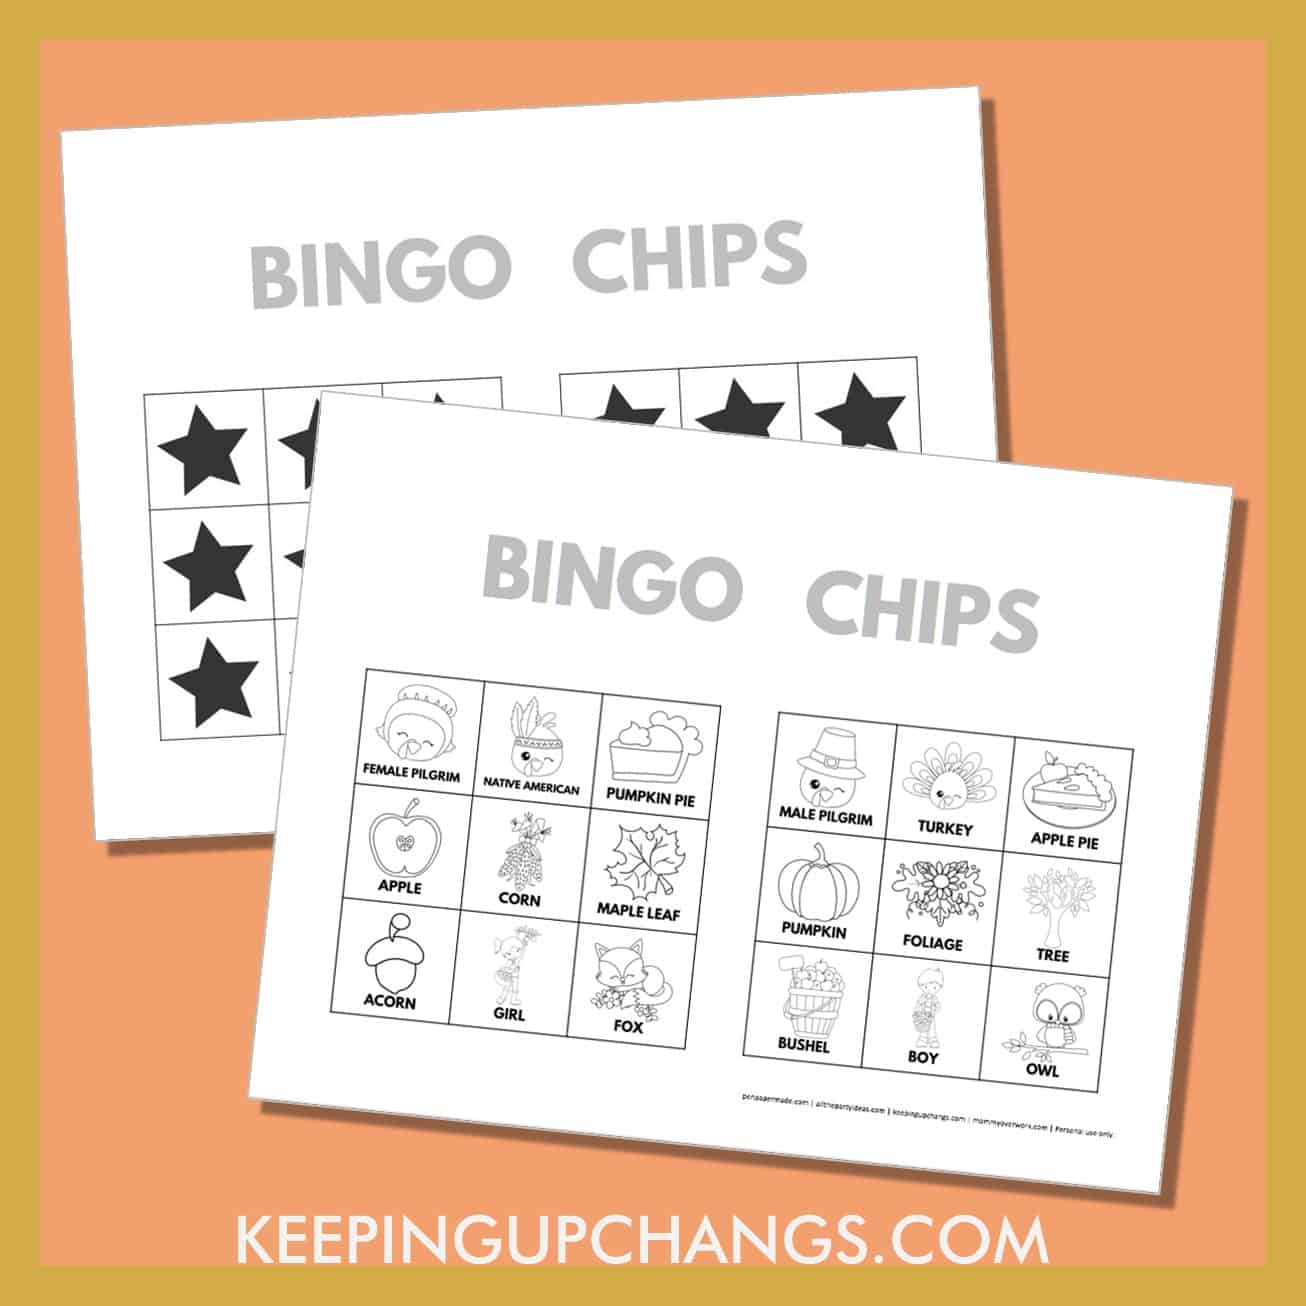 free fall thanksgiving bingo card 3x3 black white coloring game chips, tokens, markers.